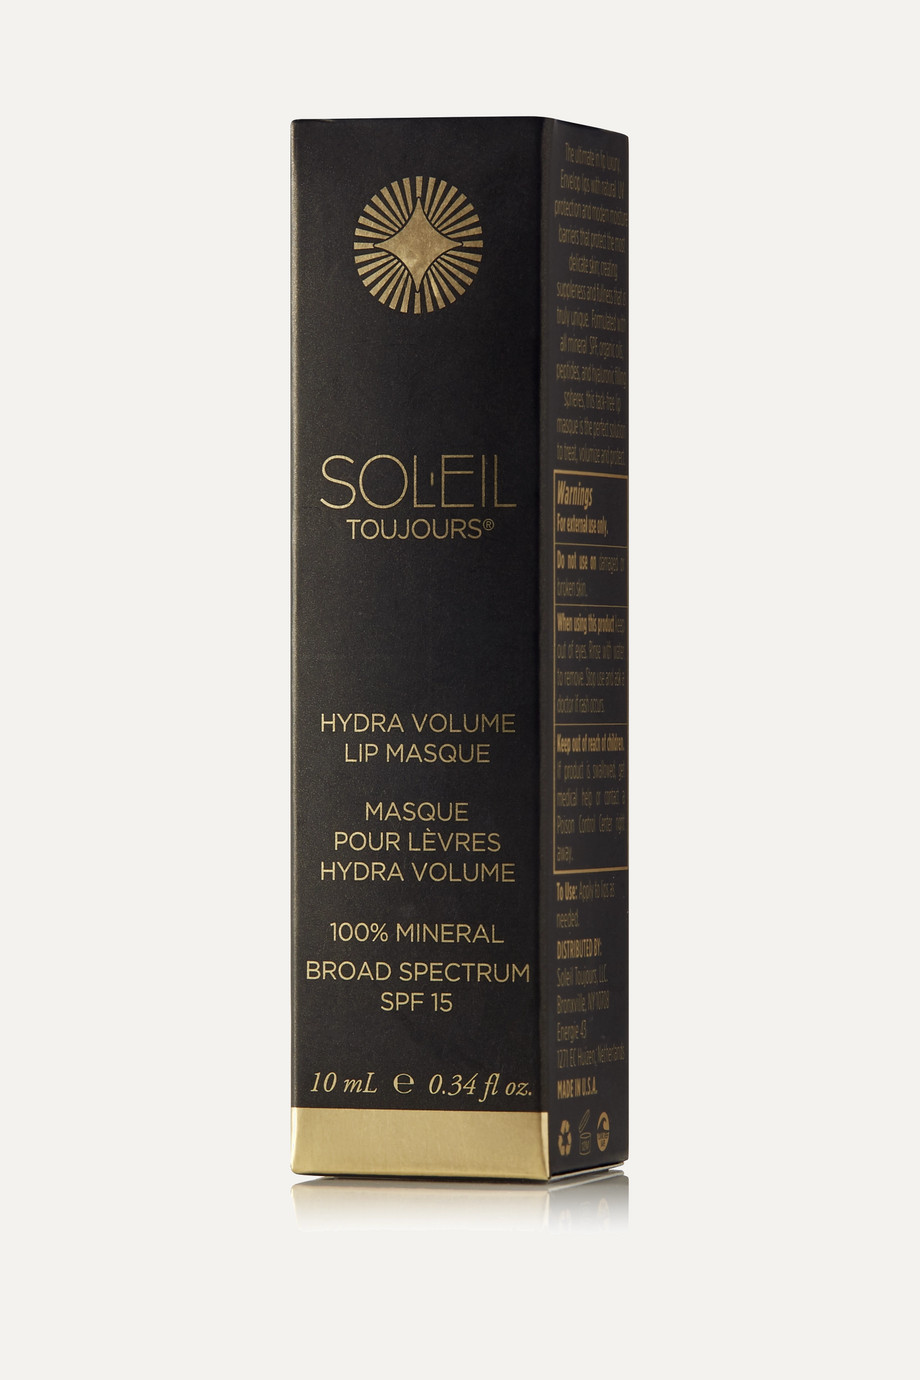 SOLEIL TOUJOURS + NET SUSTAIN Hydra Volume Lip Masque SPF15 - Cloud Nine